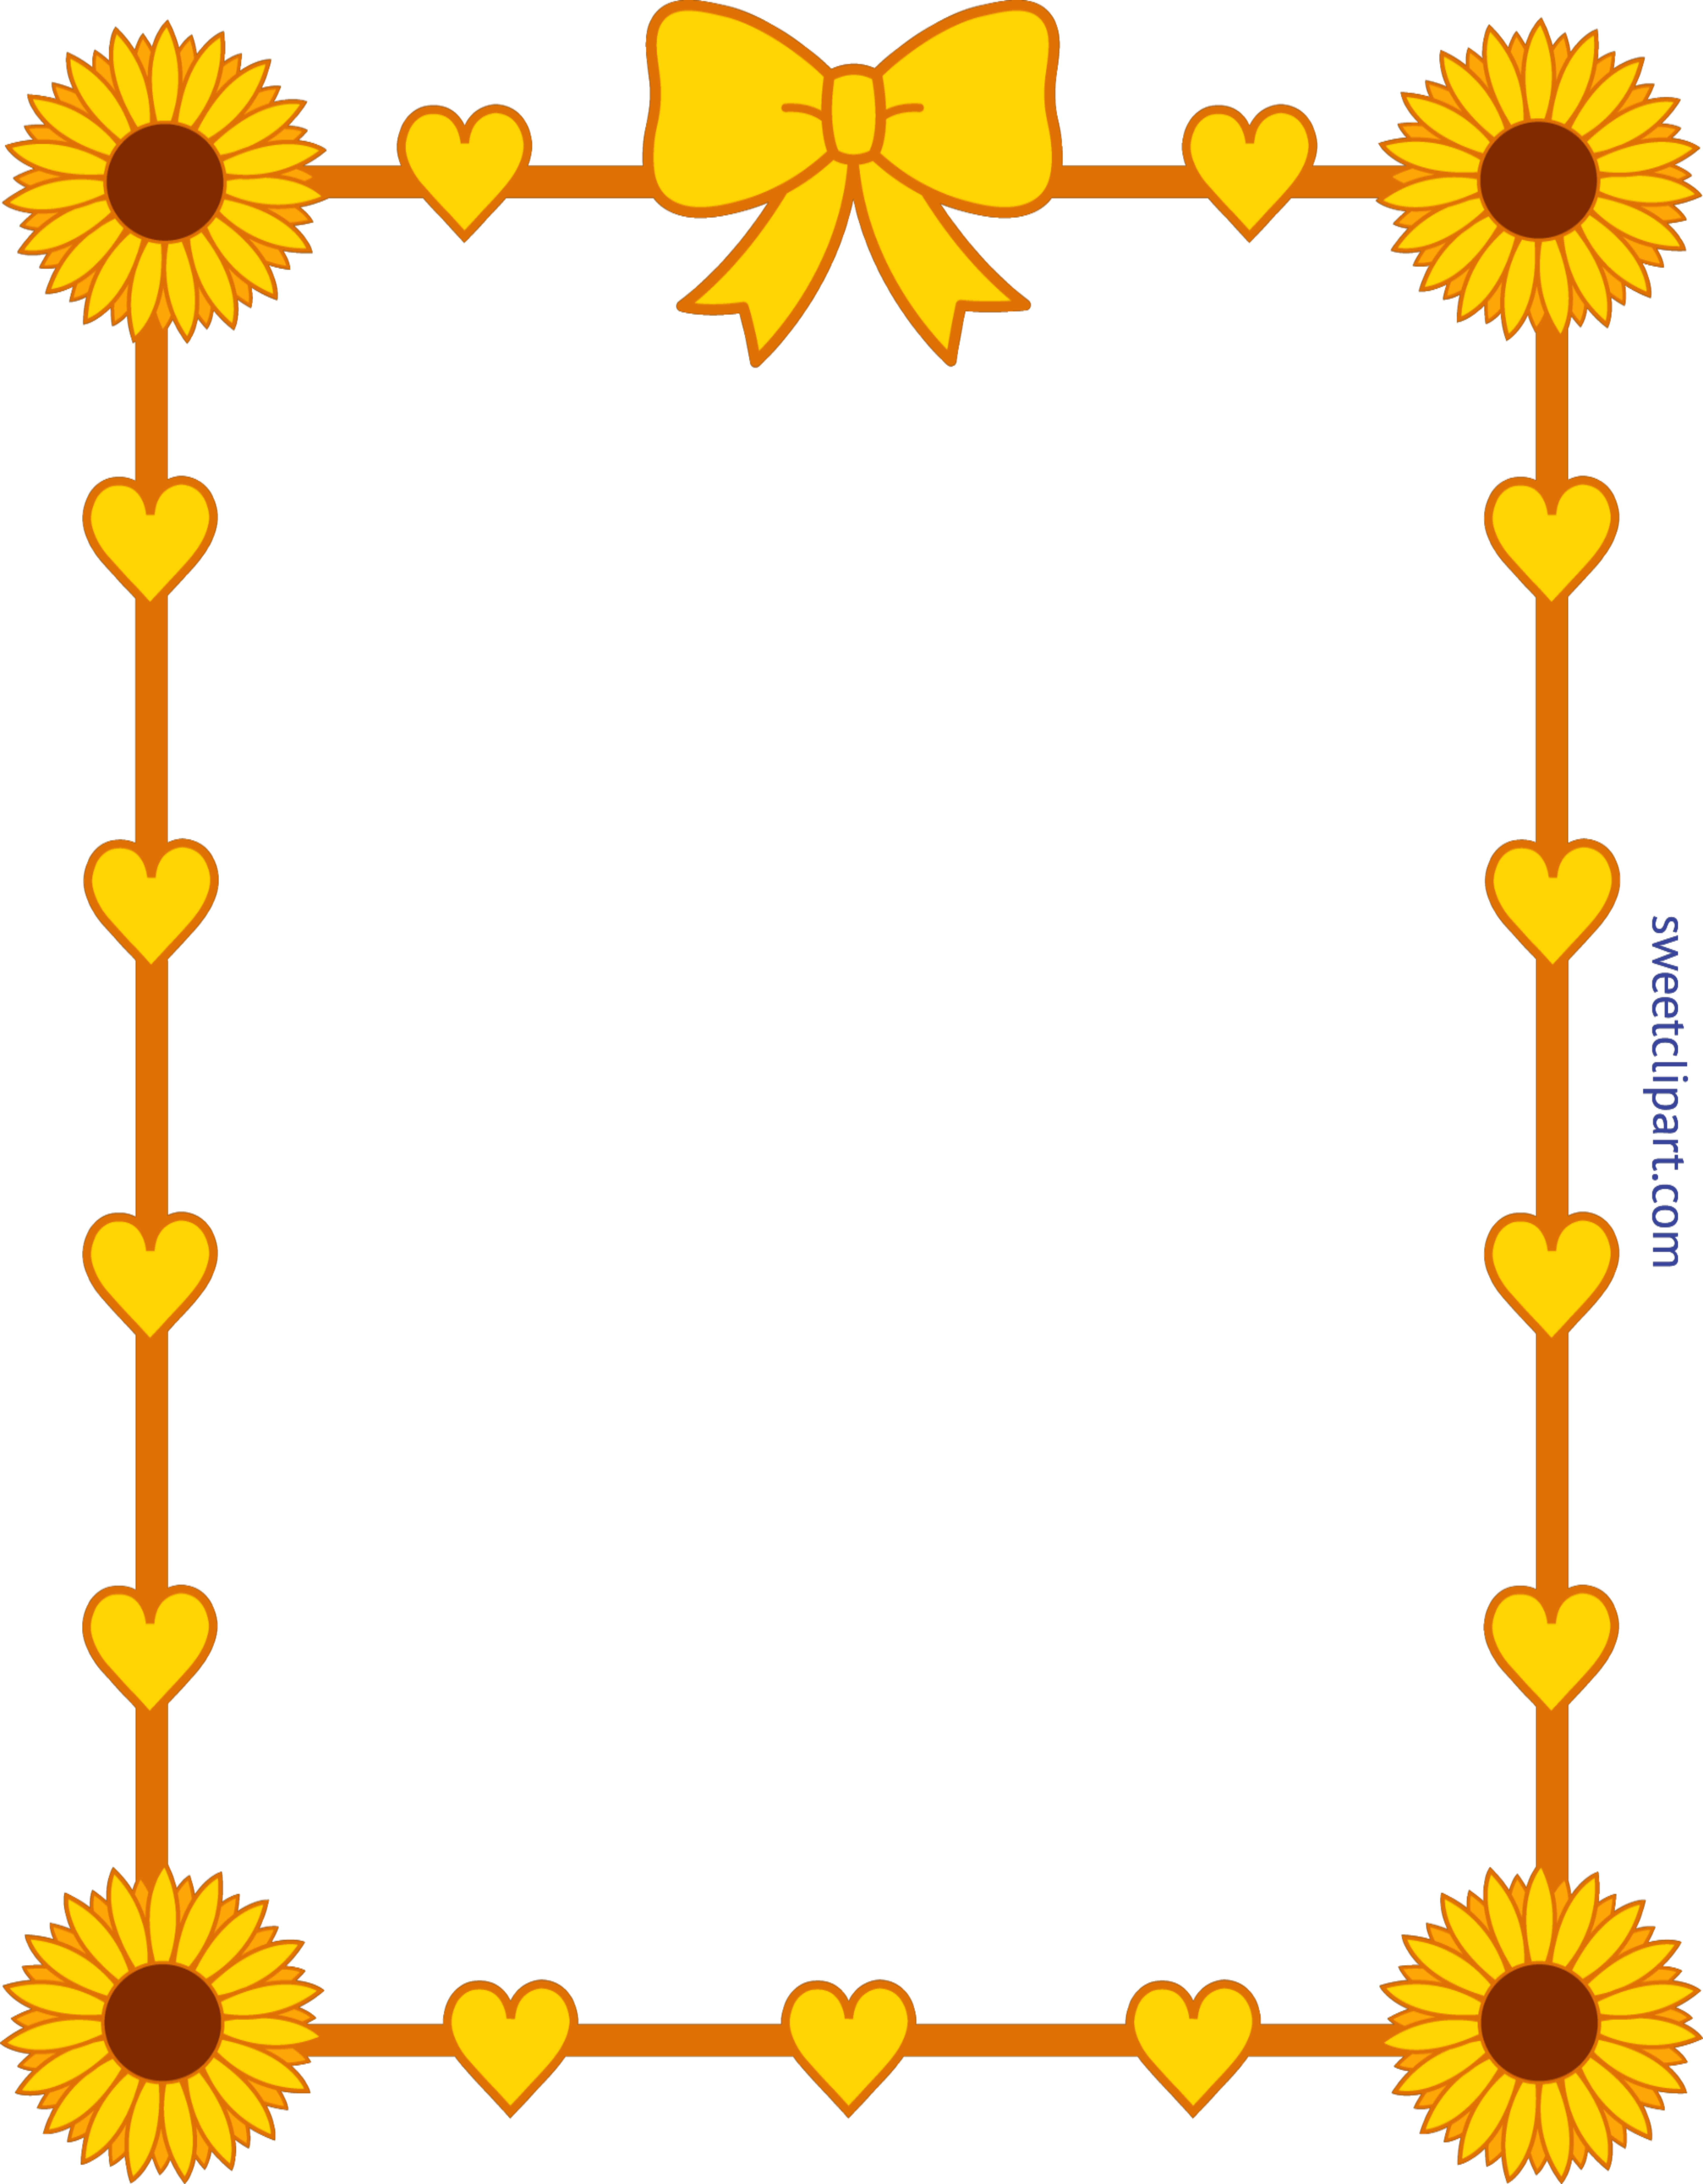 clip freeuse Sunflower yellow hearts border. Frame borders clipart